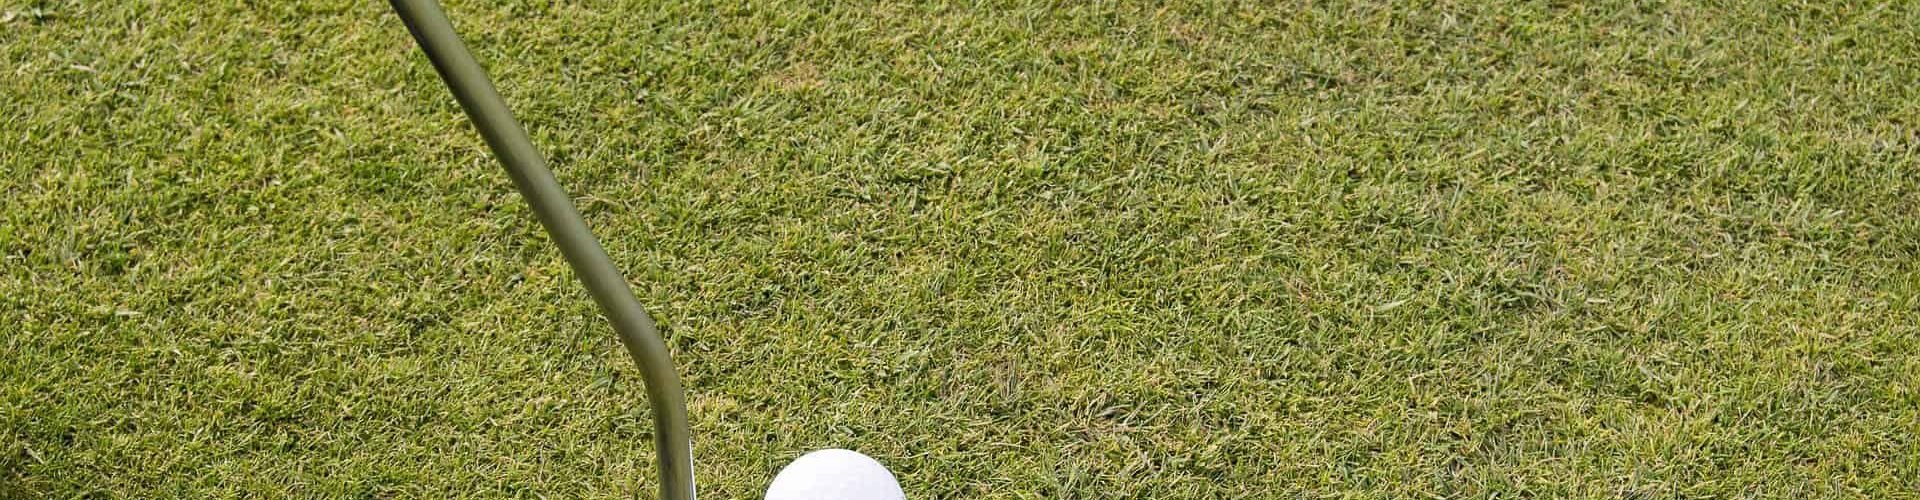 putter-green-hole_1920px